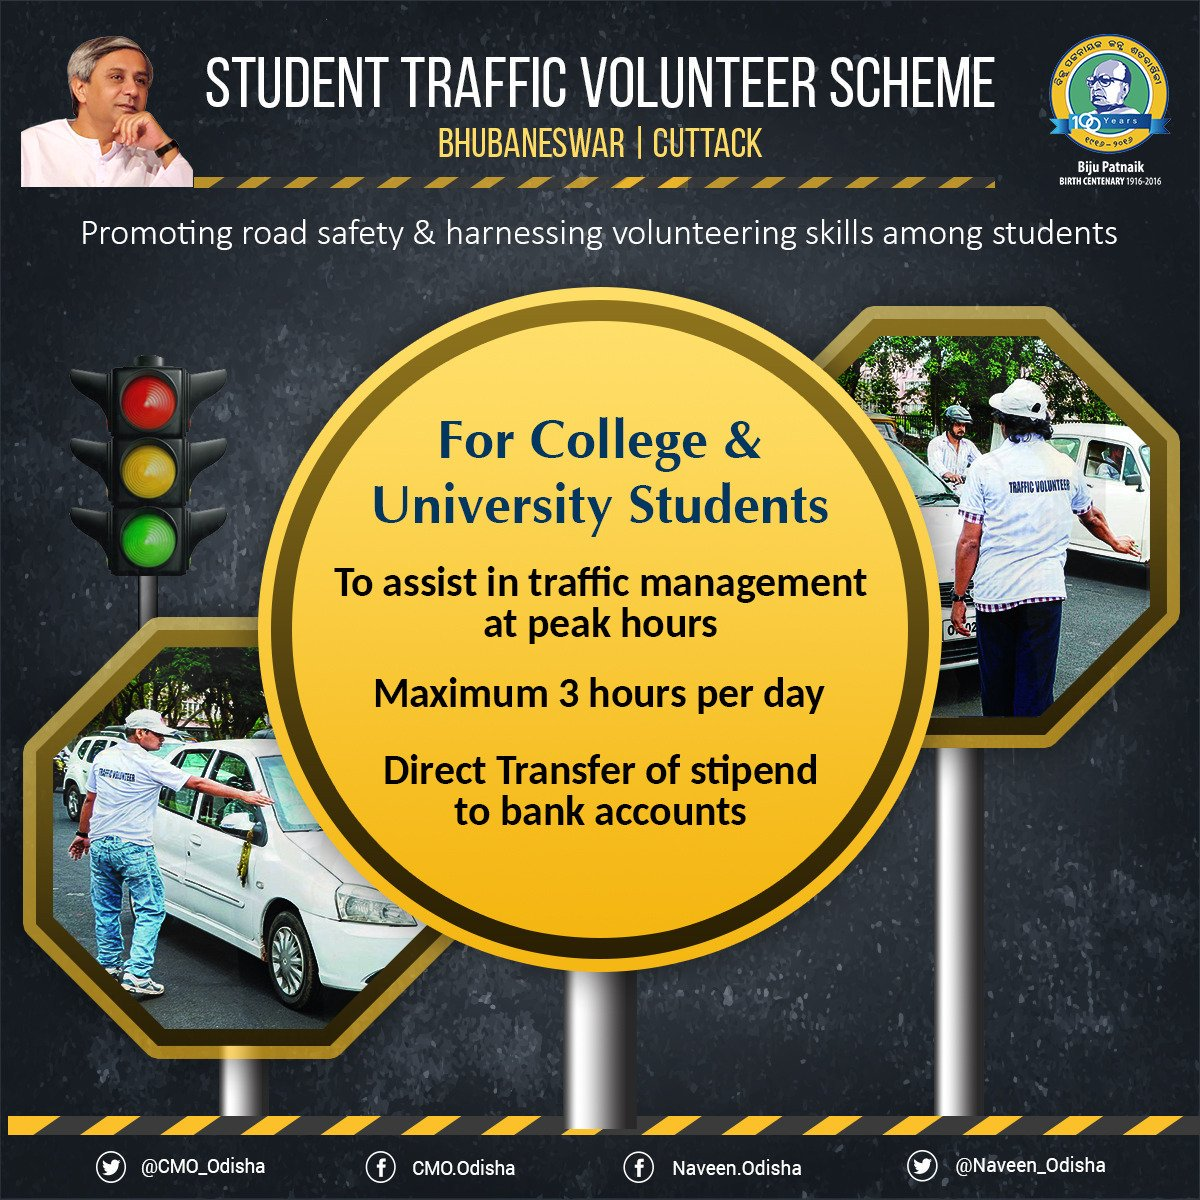 students traffic volunteer scheme bhubaneswar buzz